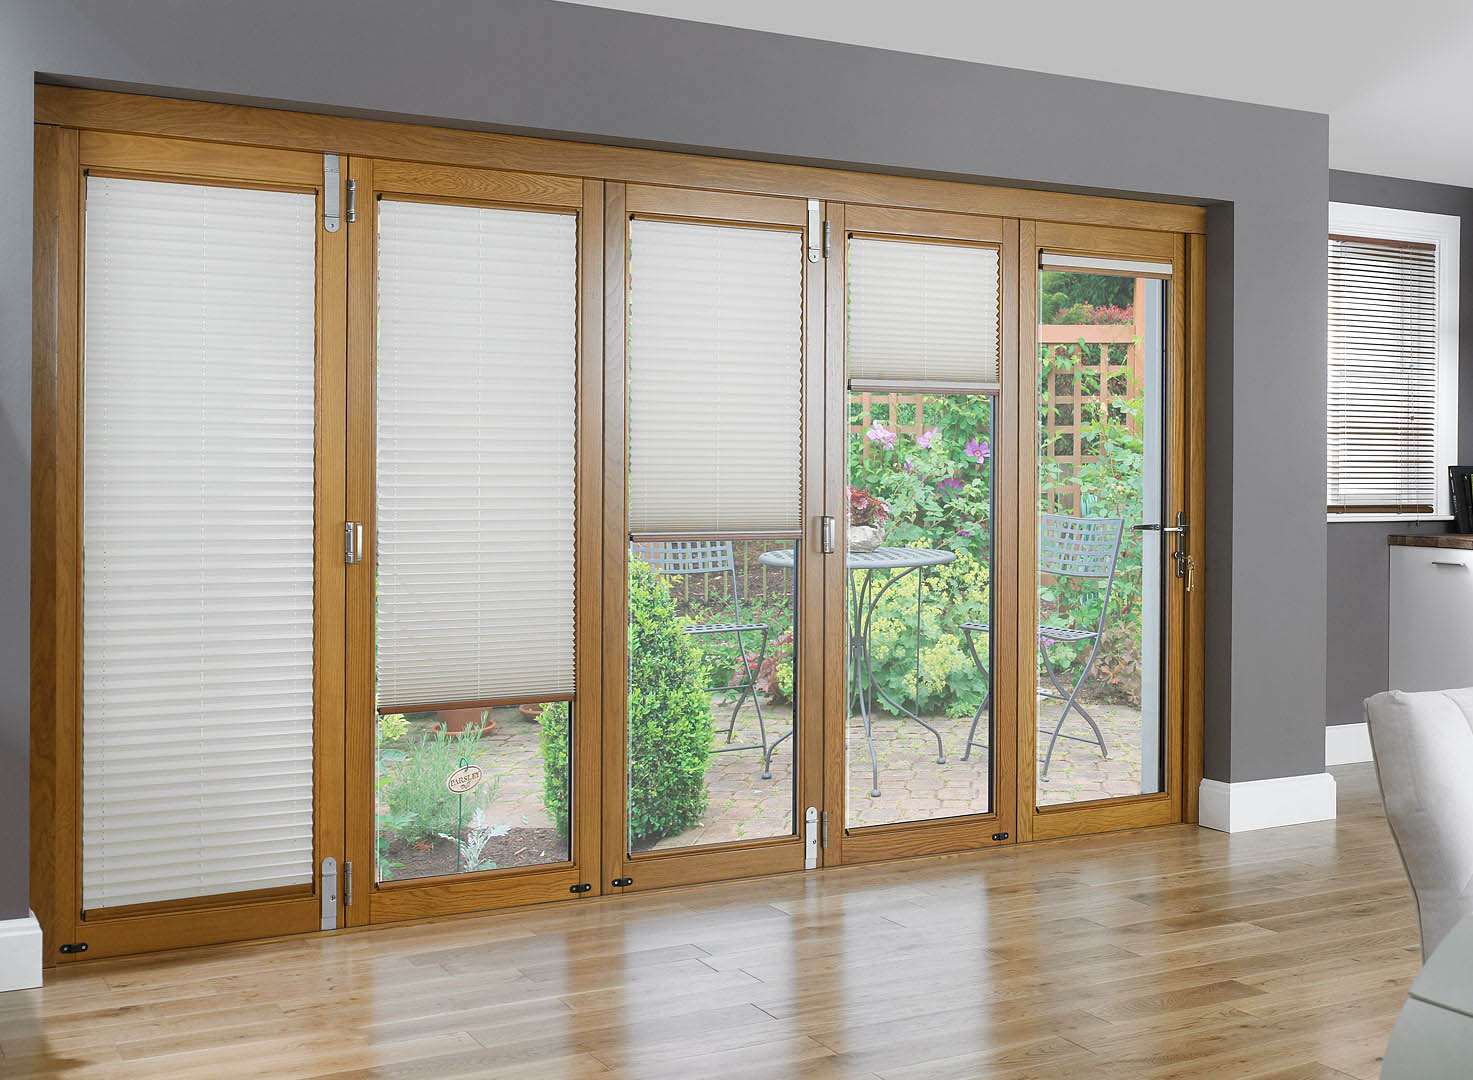 Ideas To Cover Sliding Glass Doors find this pin and more on sliding glass door coverings Patio Window Coverings Ideas Patio Window Coverings Ideas Patio Window Curtains Uk Window Treatment Best Ideas Sliding Door